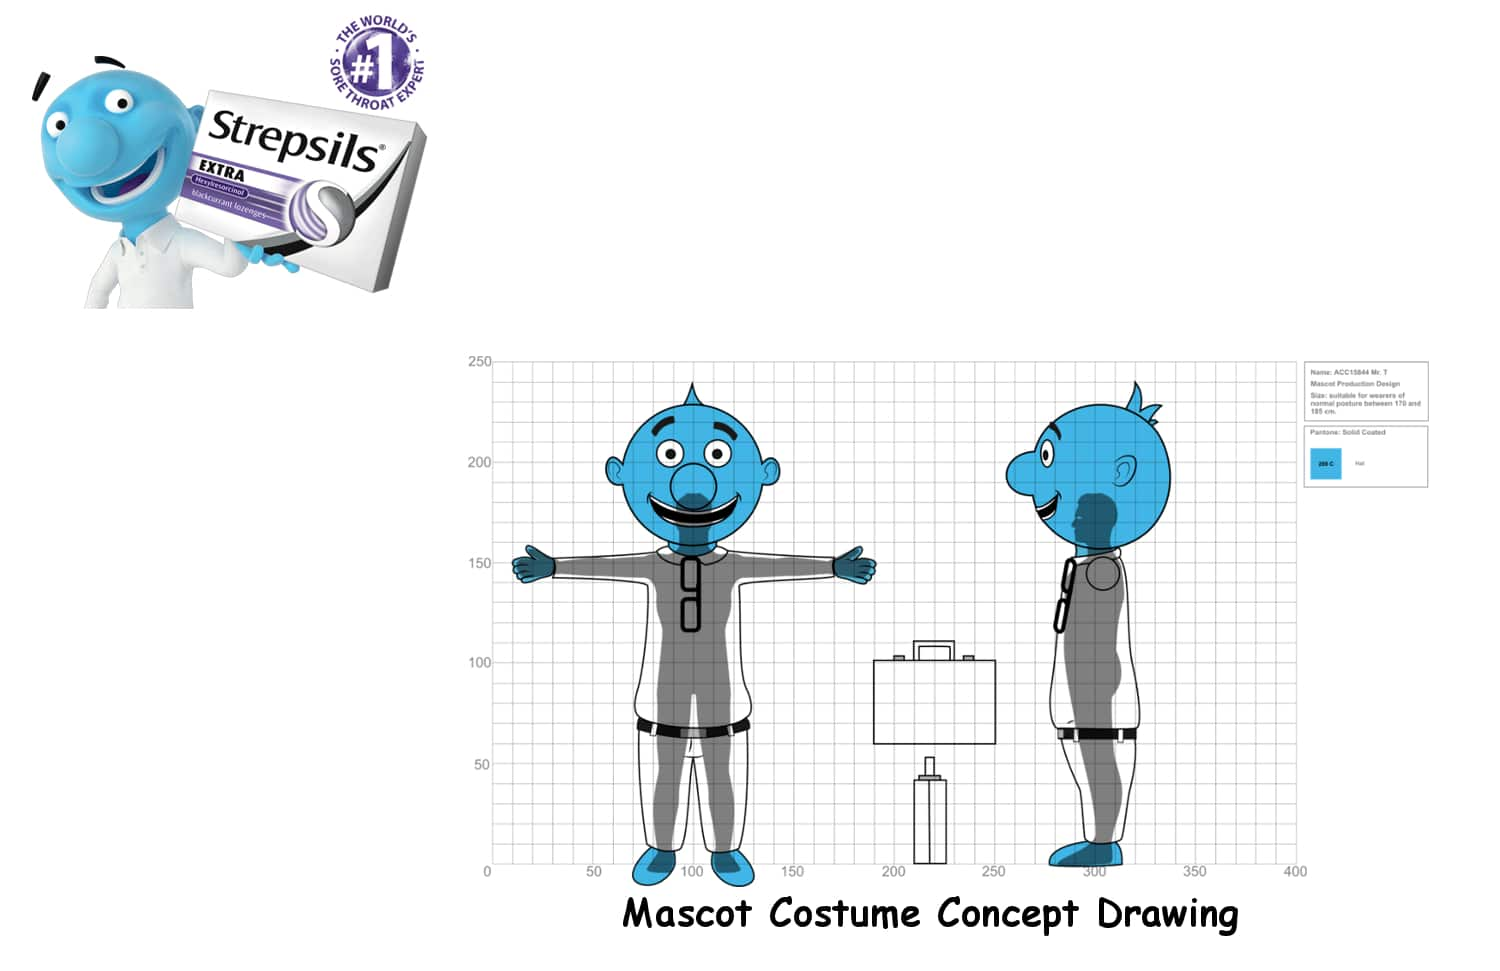 Mr t Mascot Concept Drawing -Promo Bears-